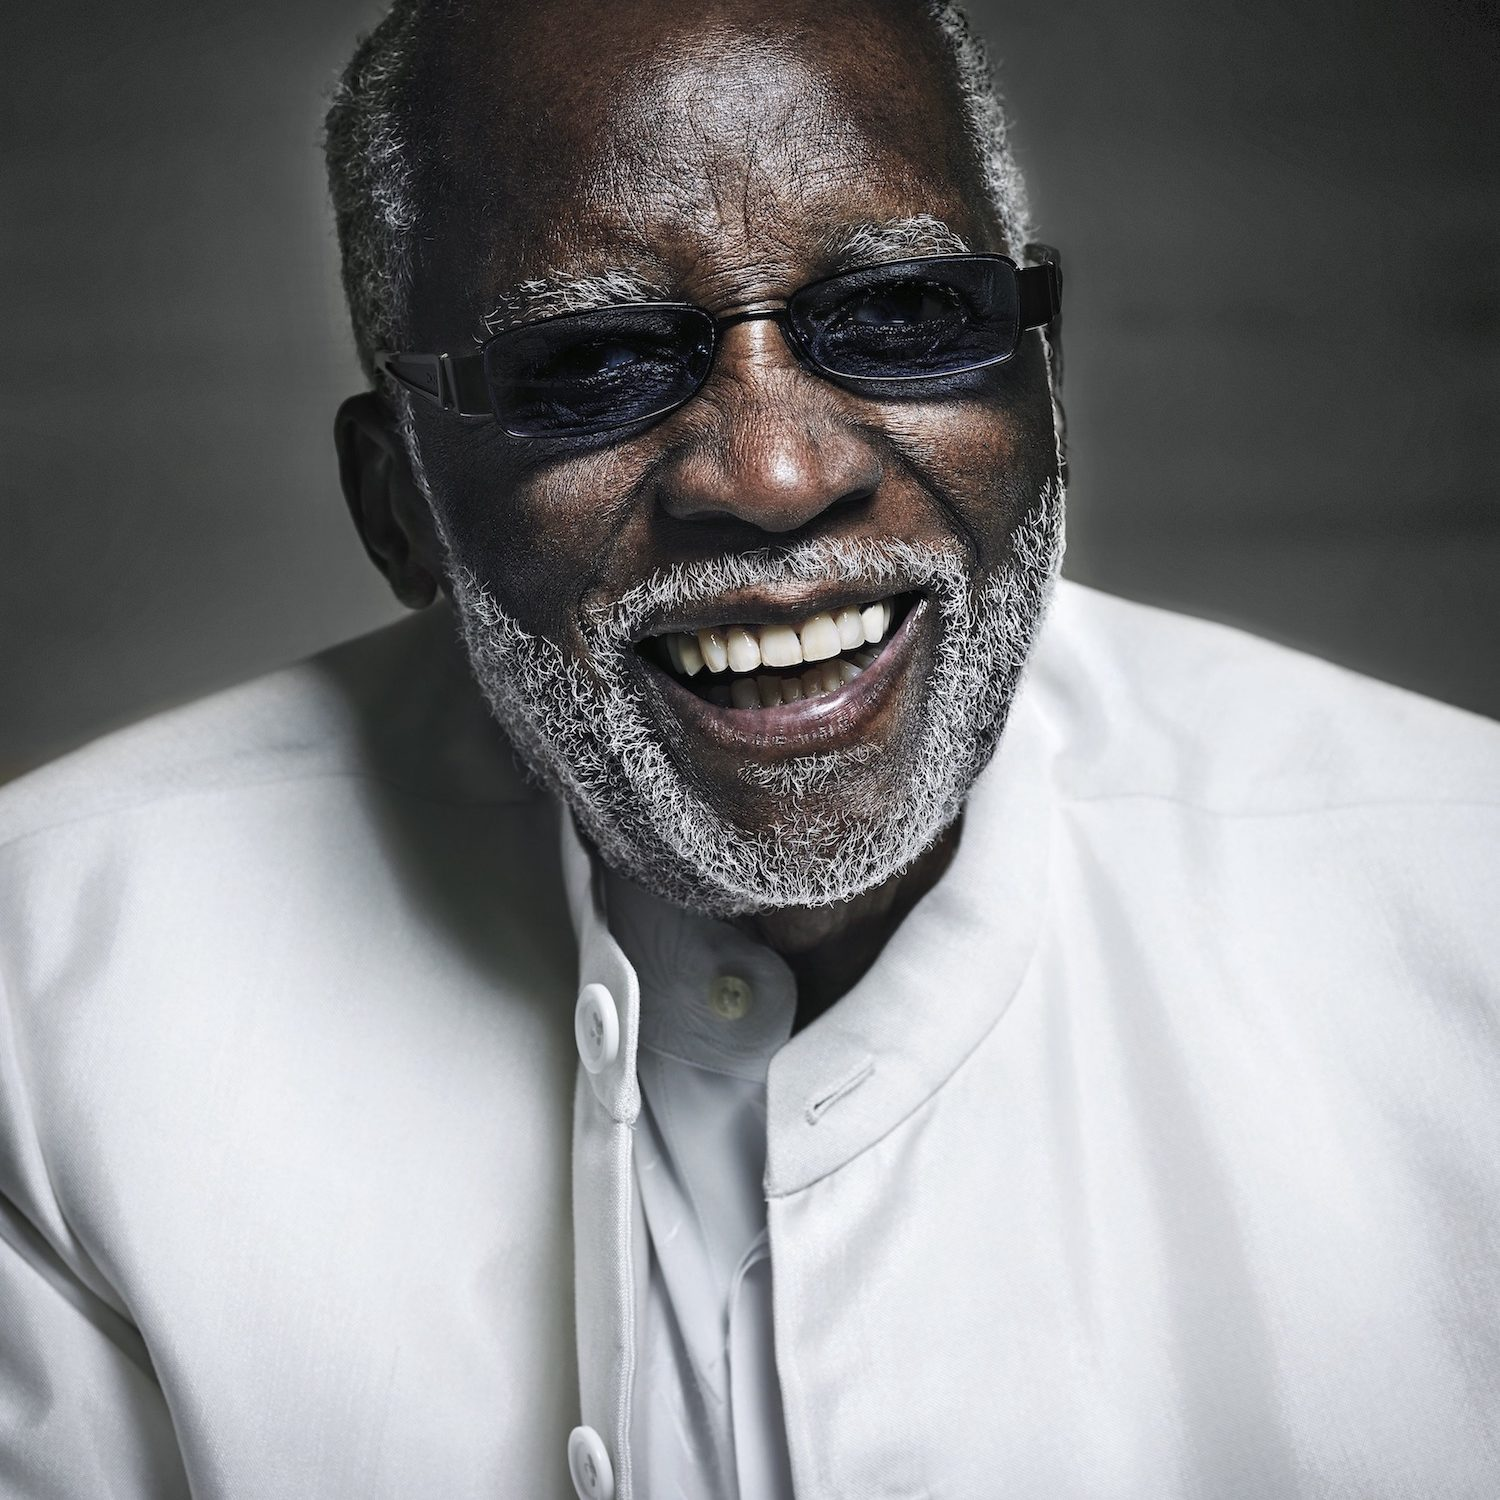 Ahmad Jamal, 88 years young: Happy birthday!